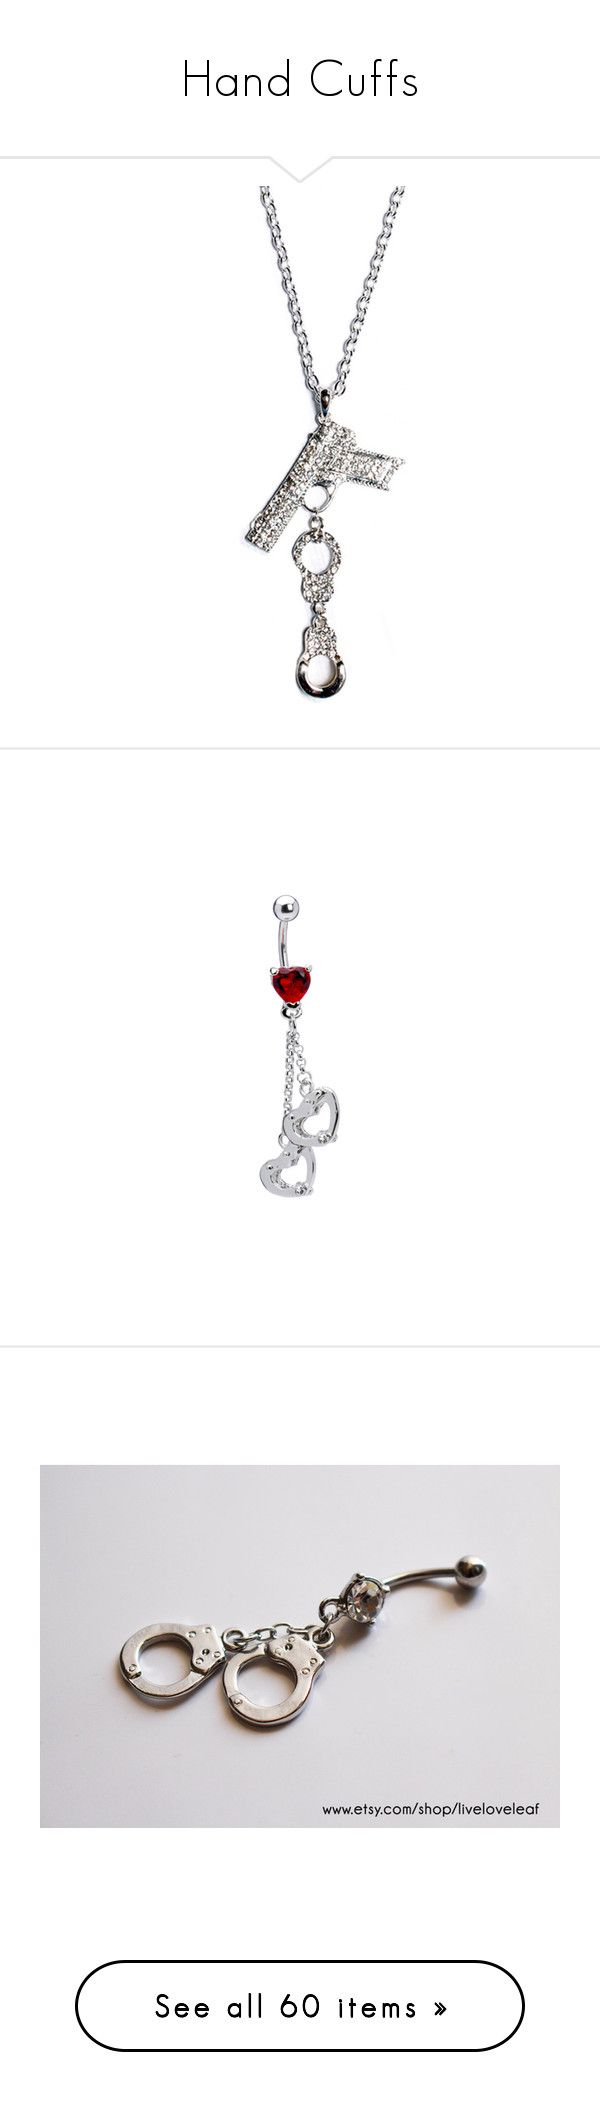 """""""Hand Cuffs"""" by southerngirly-9072 ❤ liked on Polyvore featuring jewelry, necklaces, accessories, handcuff pendant, handcuff necklaces, handcuff jewelry, hand cuff necklace, pendant necklaces, belly rings and piercings"""